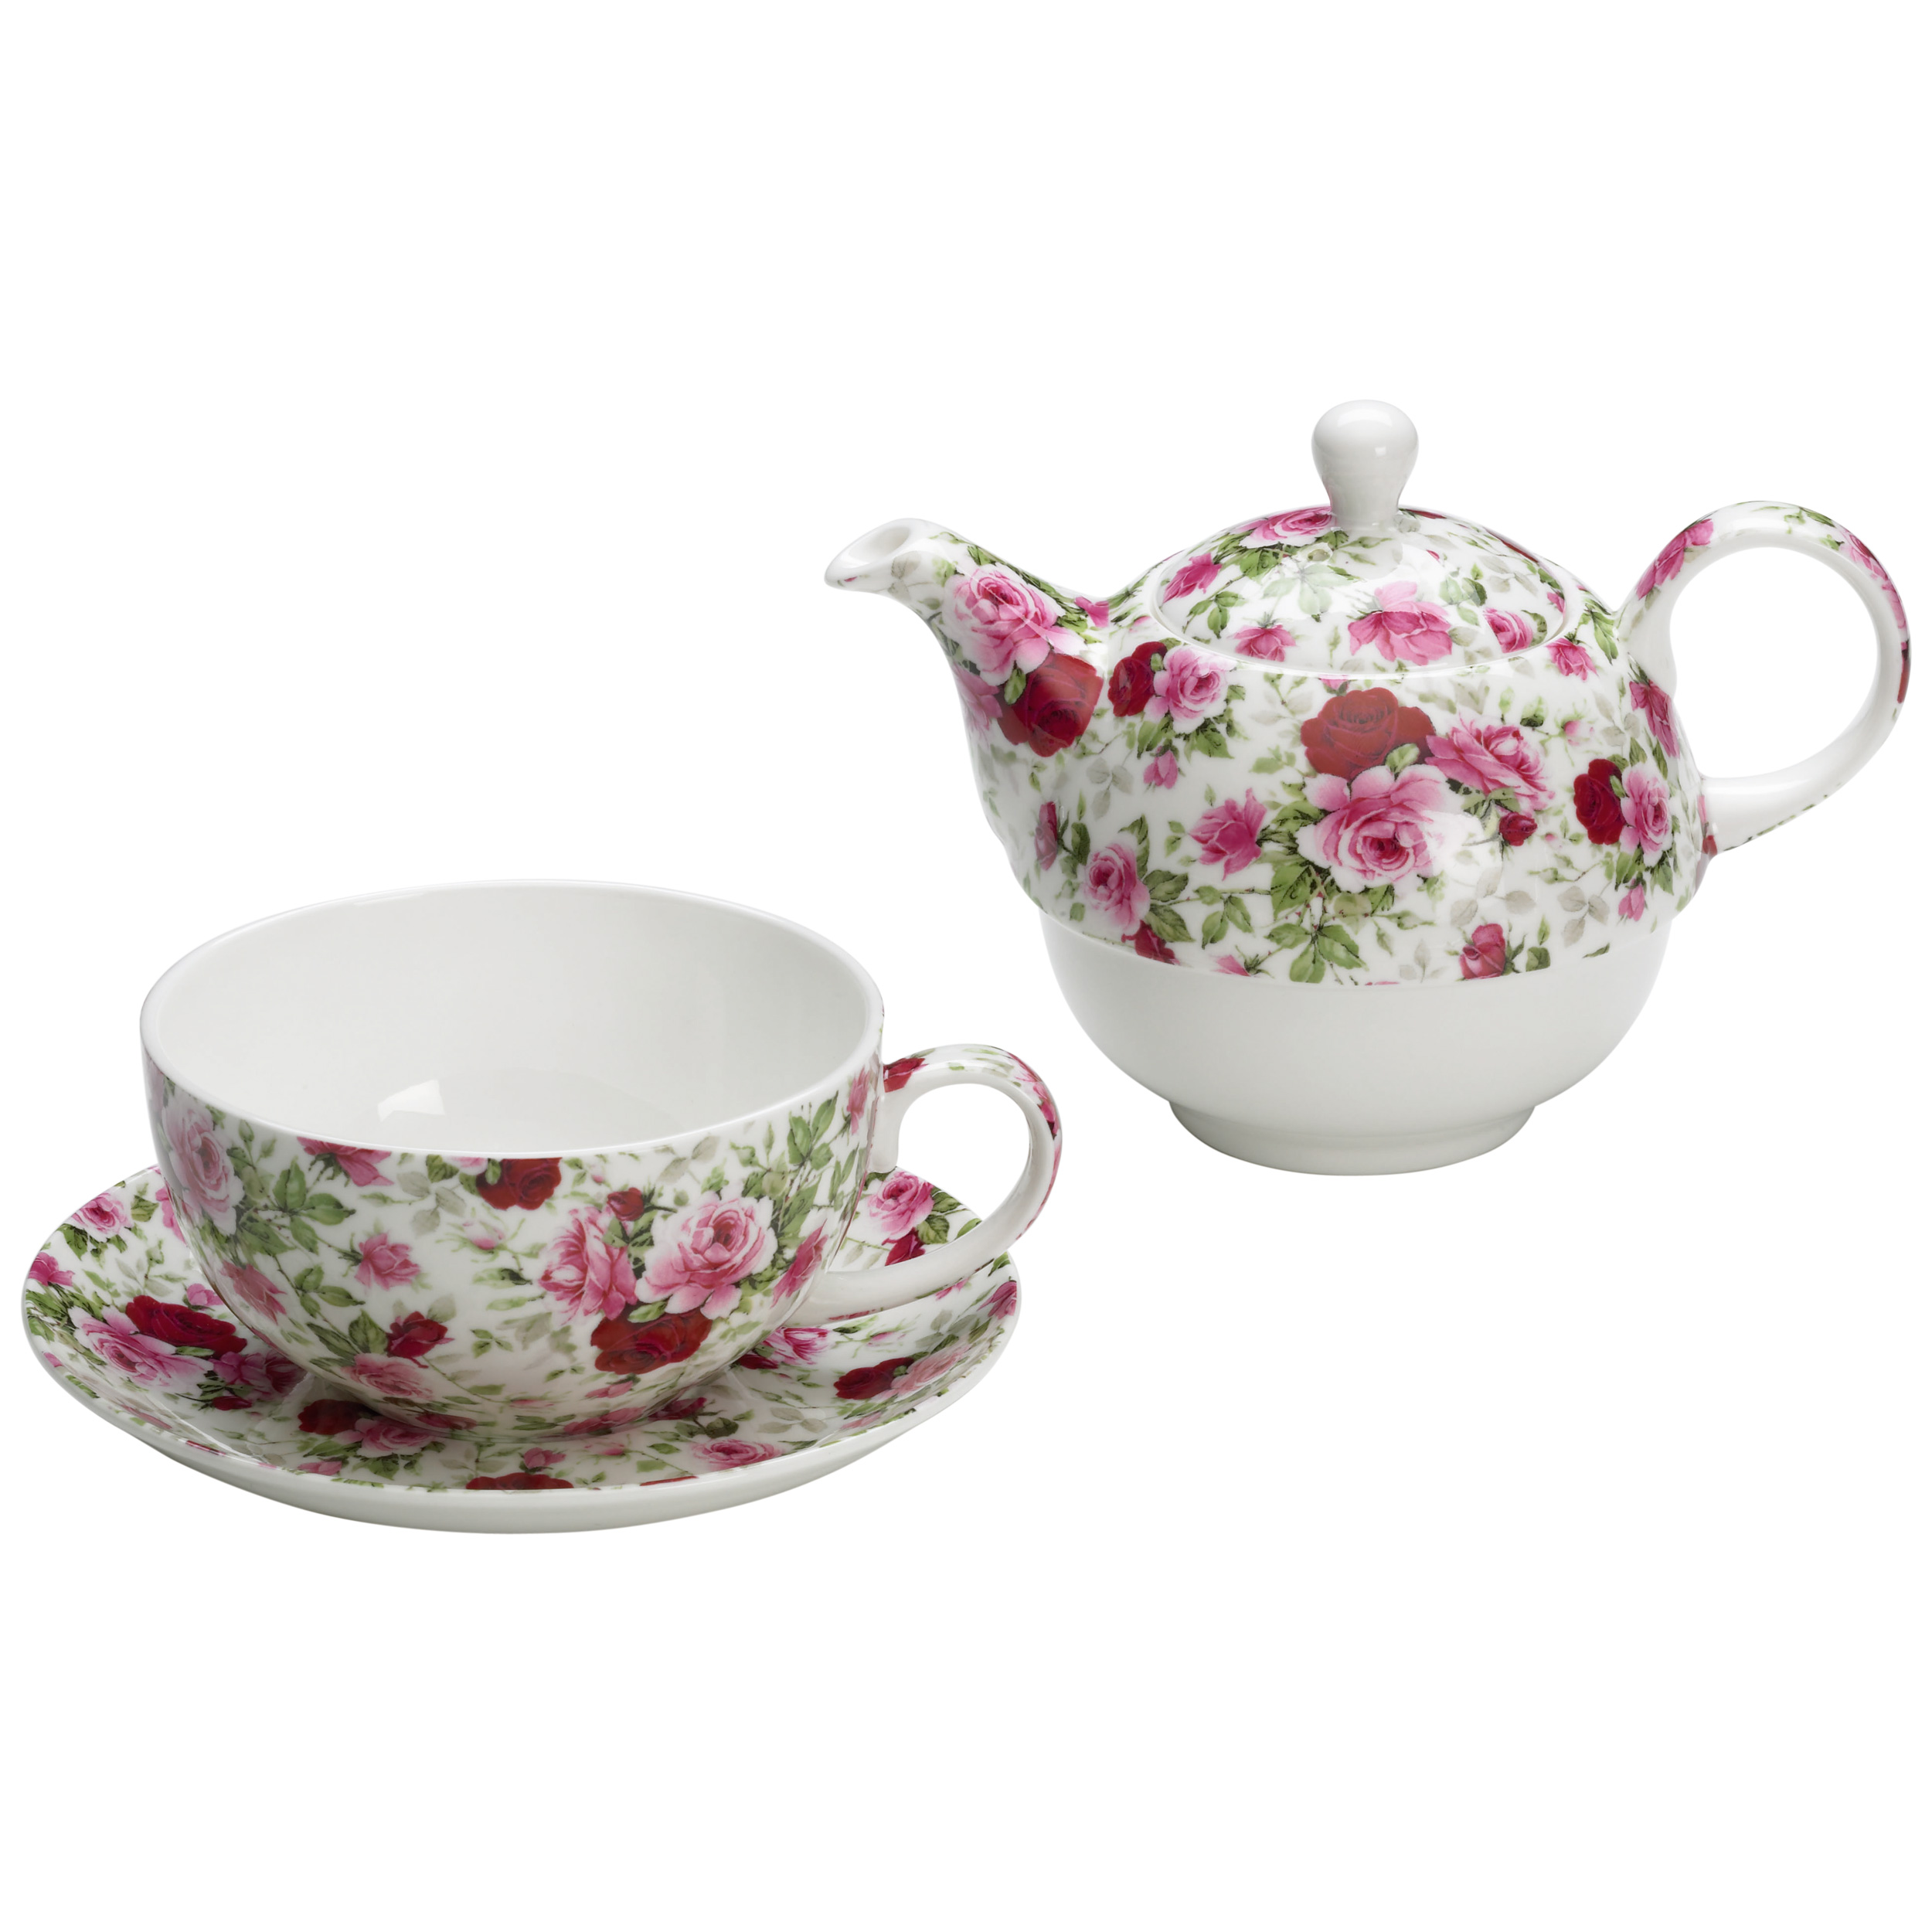 maxwell williams royal old england tea set for one rose bud gb 3 pieces s3118710 at about. Black Bedroom Furniture Sets. Home Design Ideas